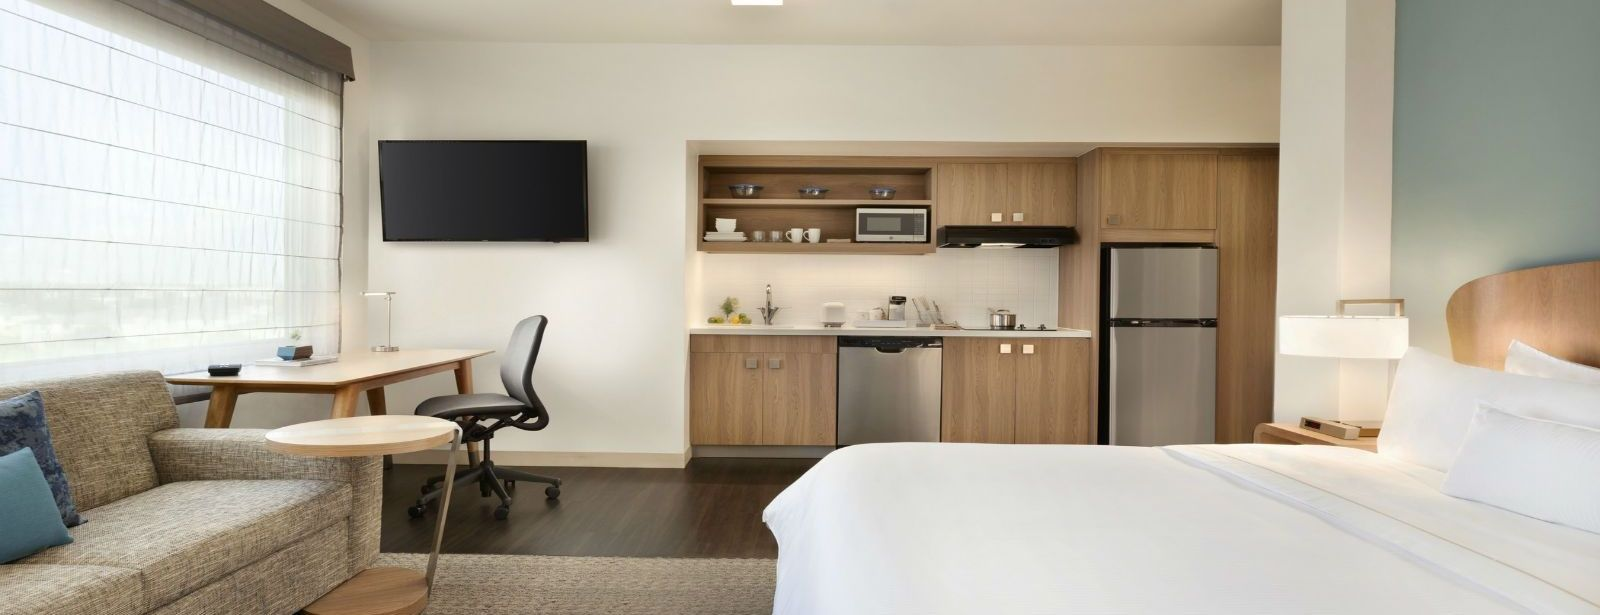 Dallas Accommodations - Standard King Room